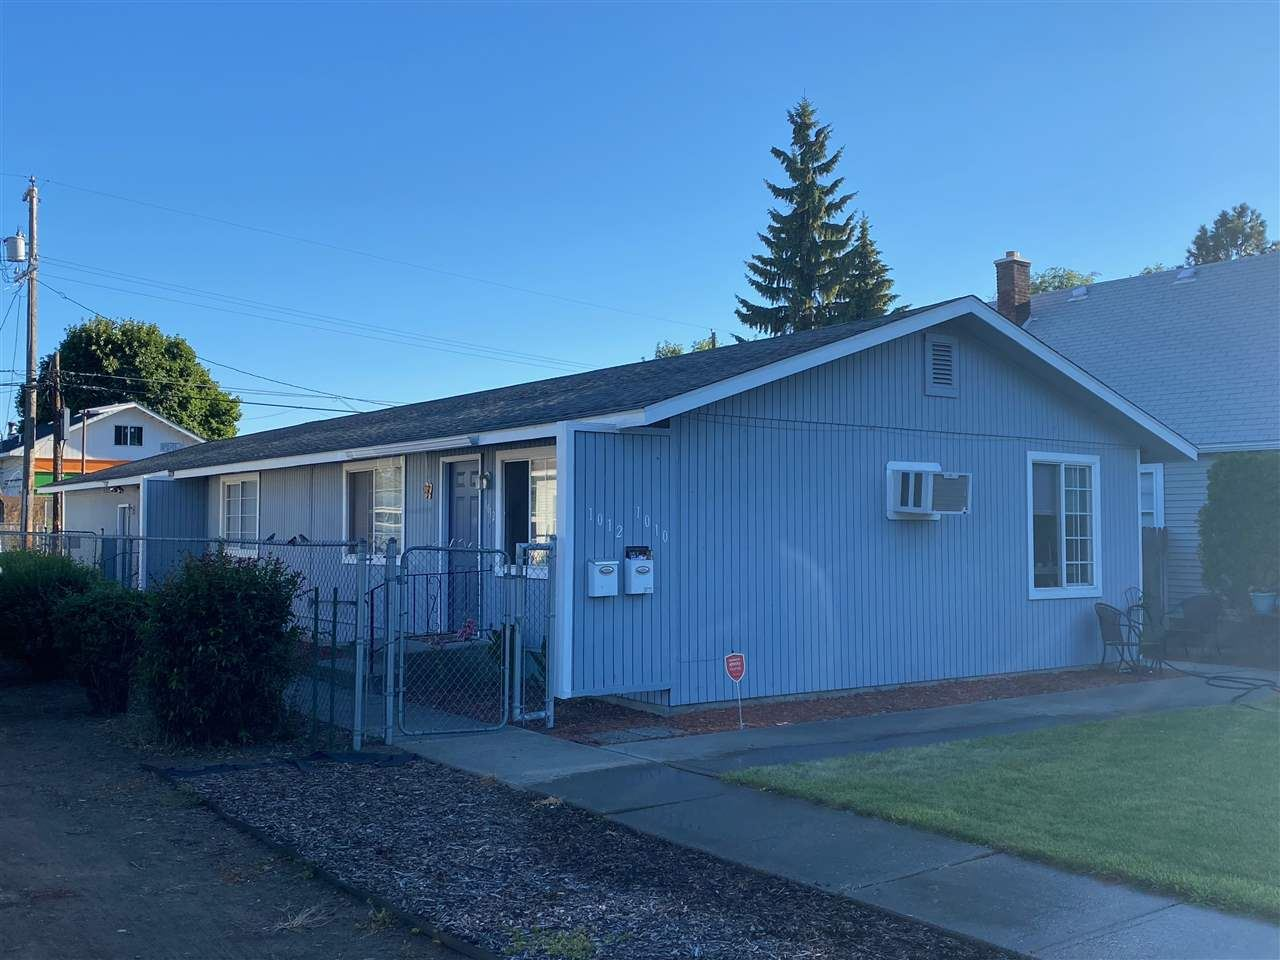 1012 E Everett Ave #1010, Spokane, WA 99207 - #: 202019429